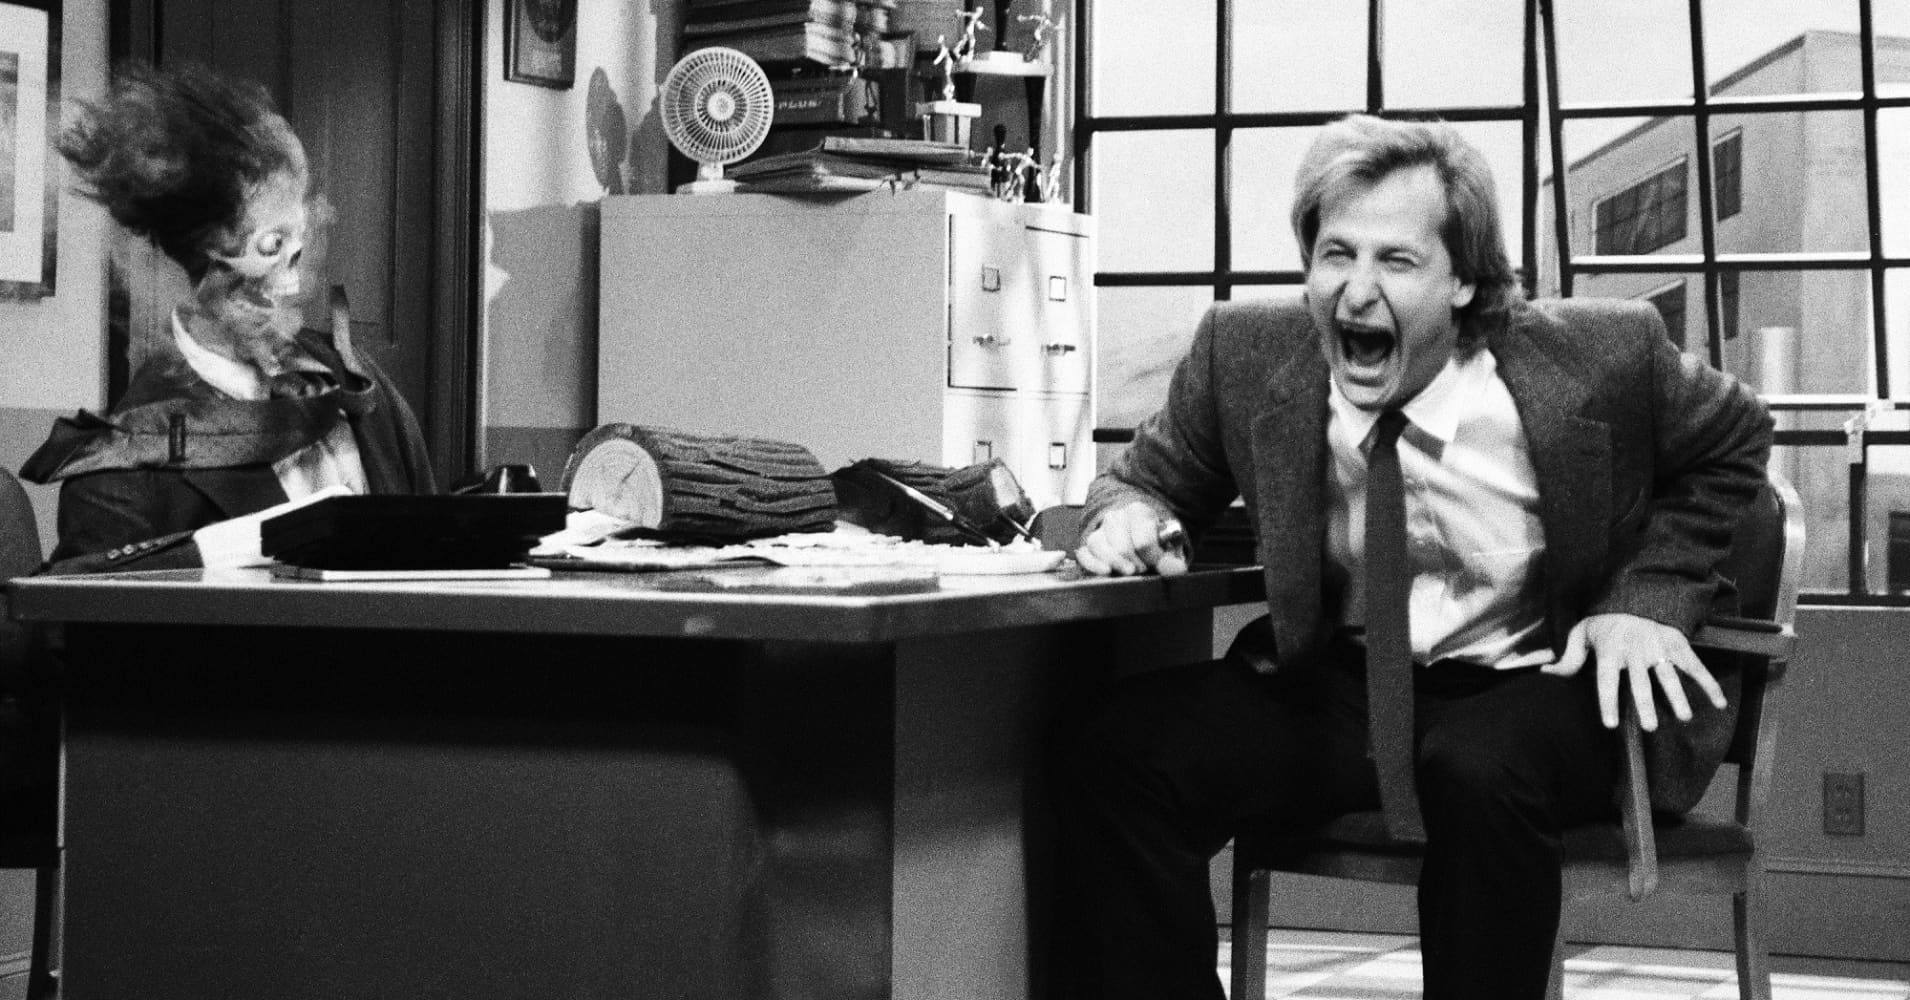 Jeff Daniels as Tom Jensen on Saturday Night Live October 5, 1991